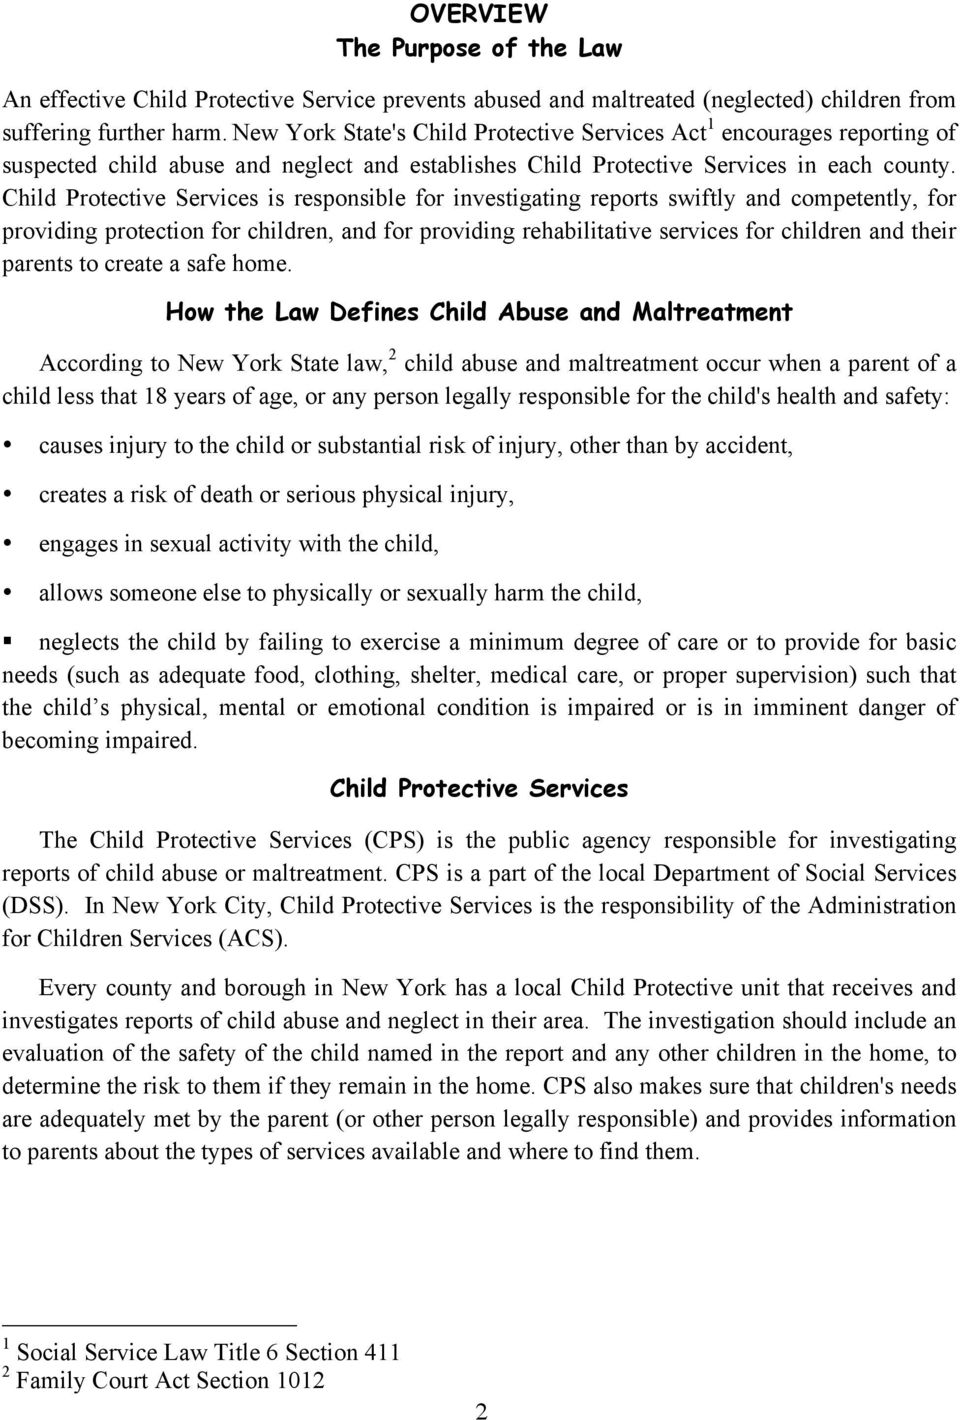 Child Protective Services is responsible for investigating reports swiftly and competently, for providing protection for children, and for providing rehabilitative services for children and their